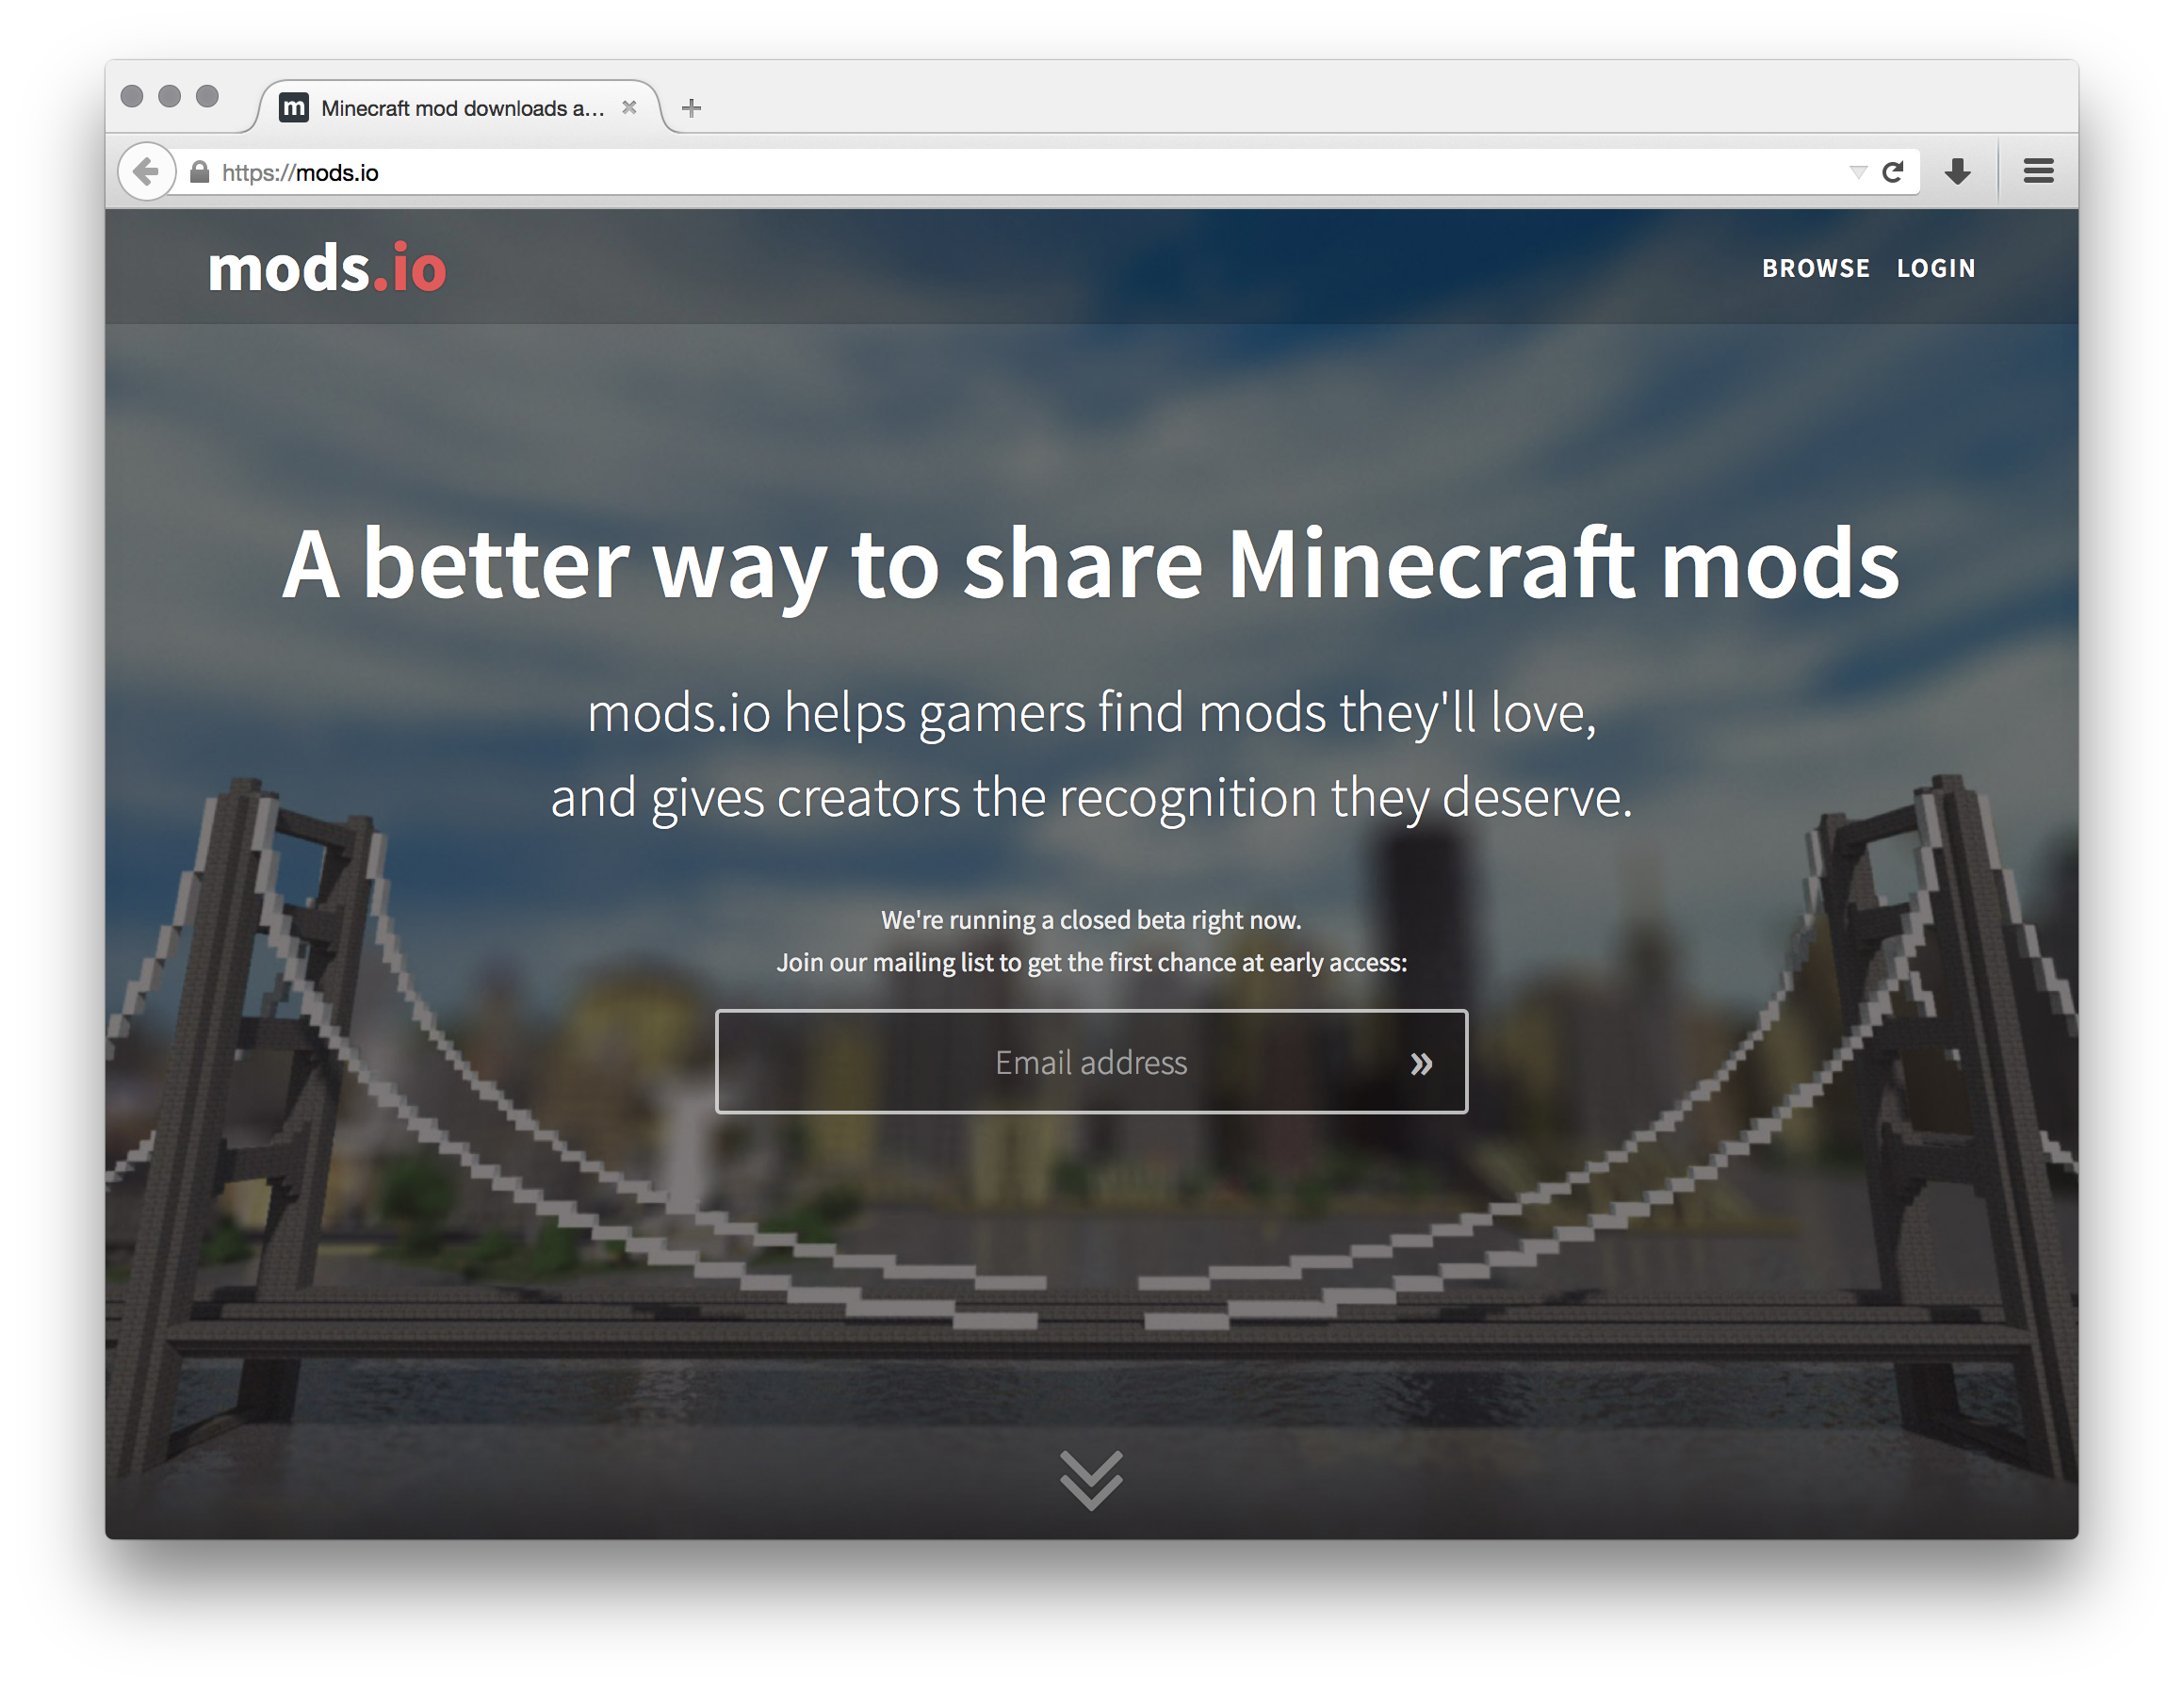 mods.io homepage